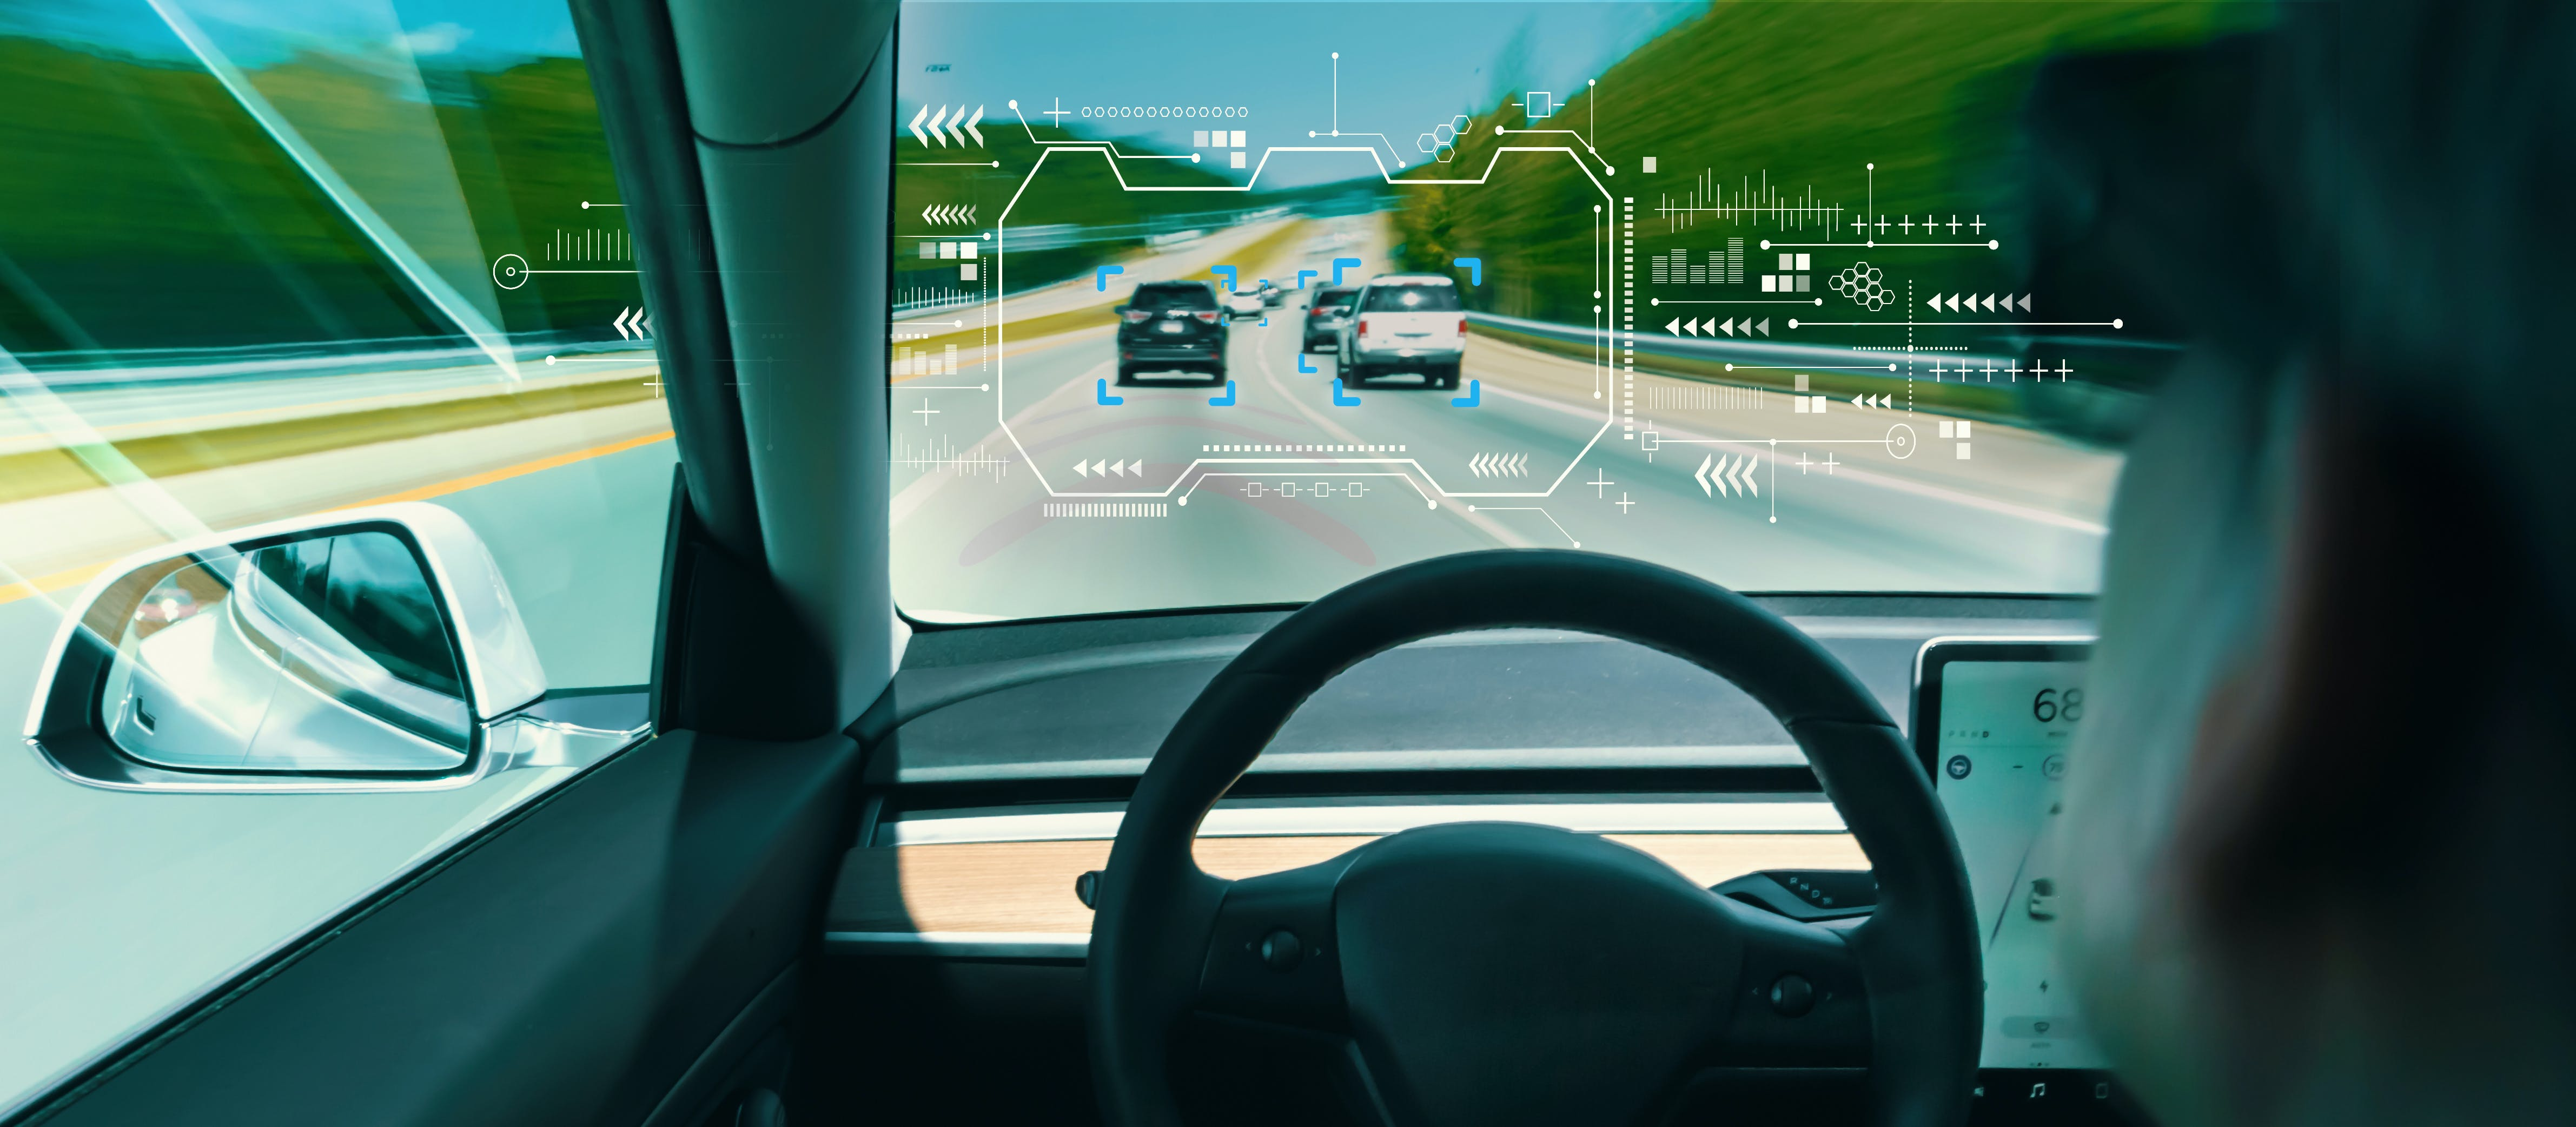 Automotive cybersecurity: A multilayered approach to safeguard connected cars